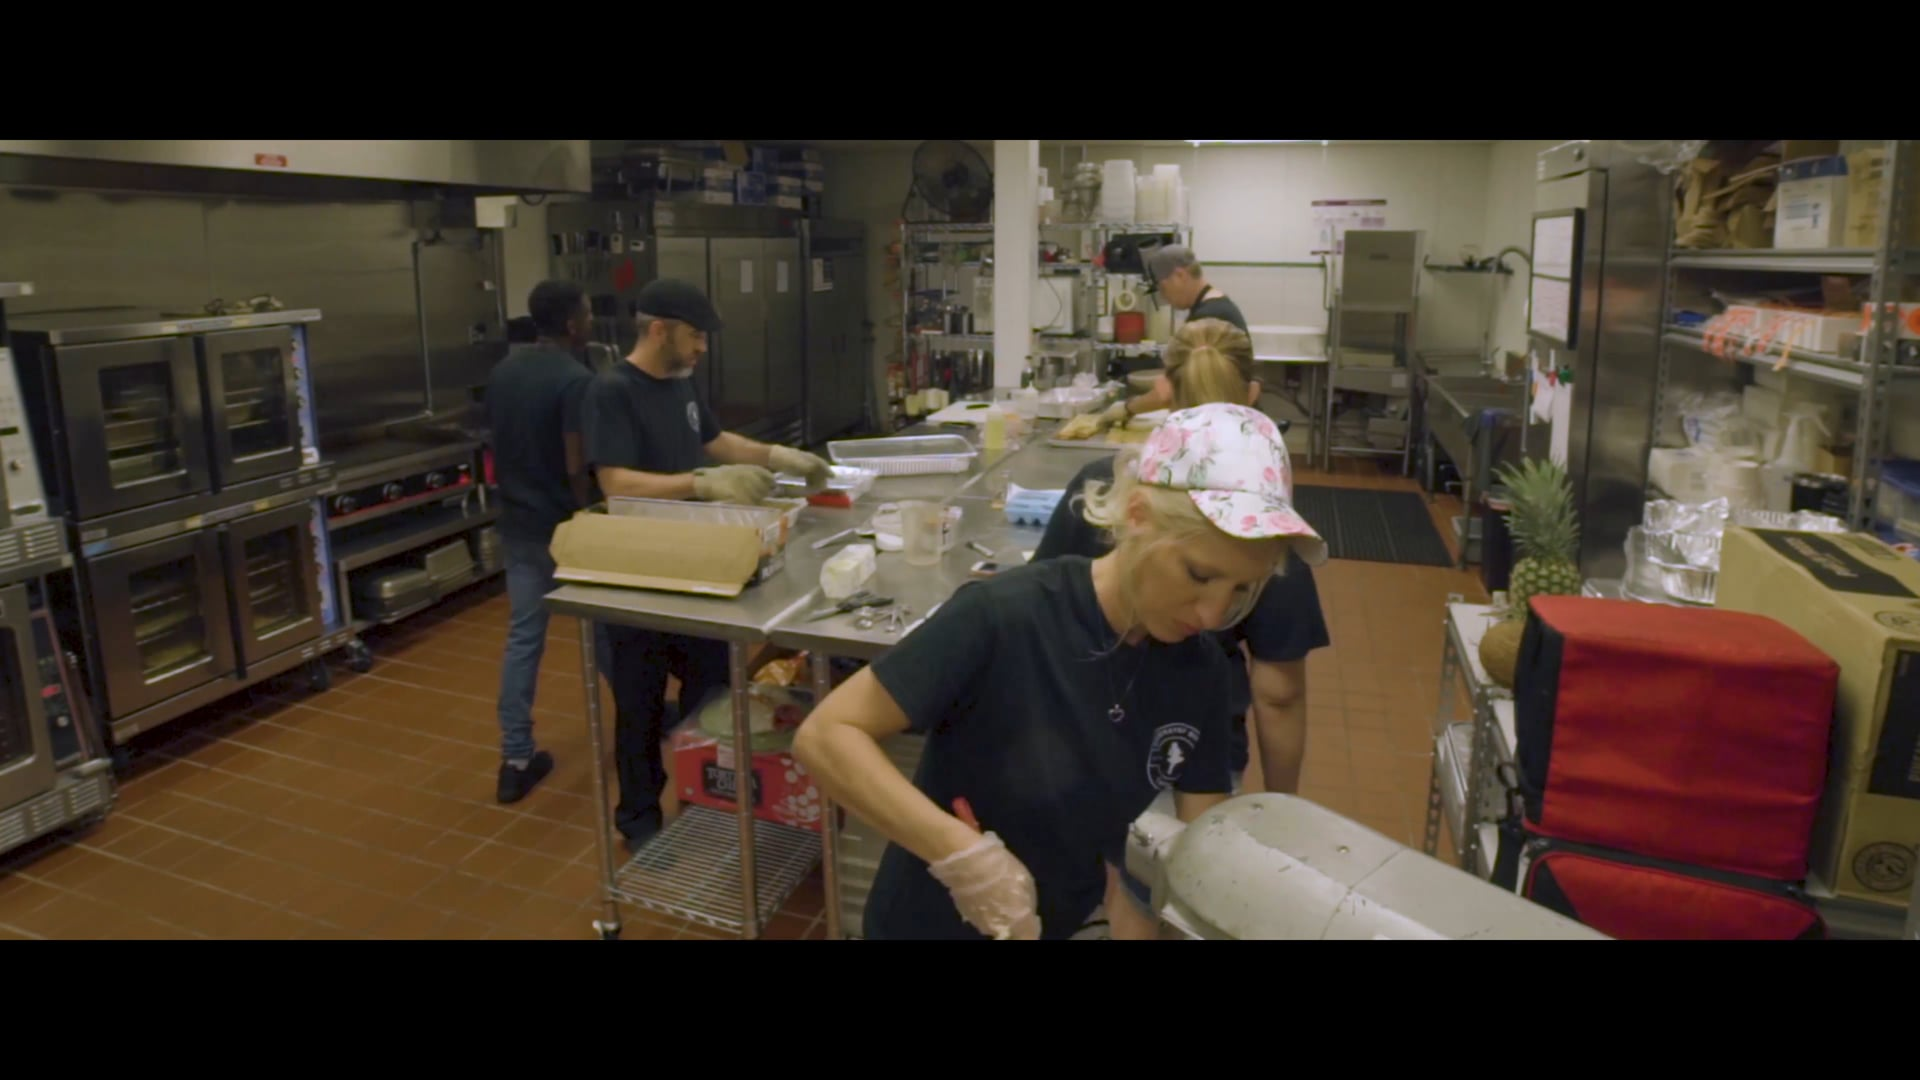 Every Day, We Cook for Today | Doorstep Diner